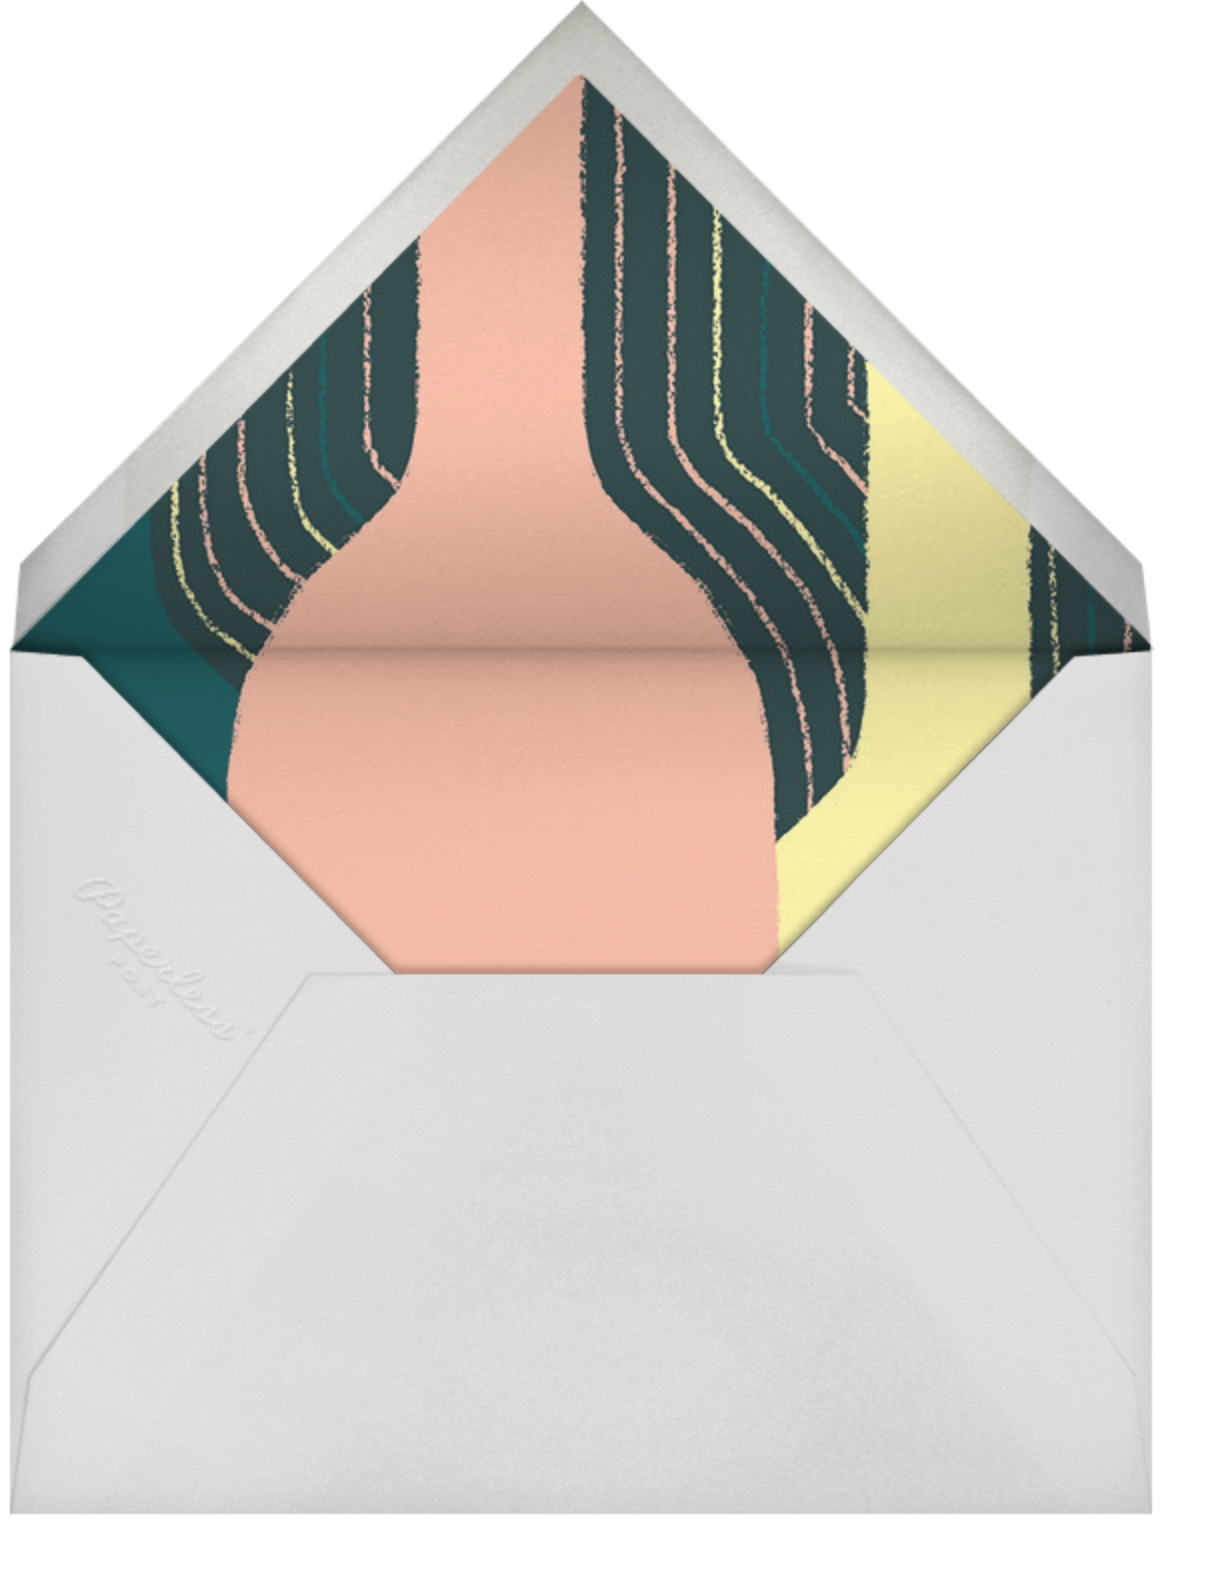 Pour You - White - Paperless Post - Adult birthday - envelope back